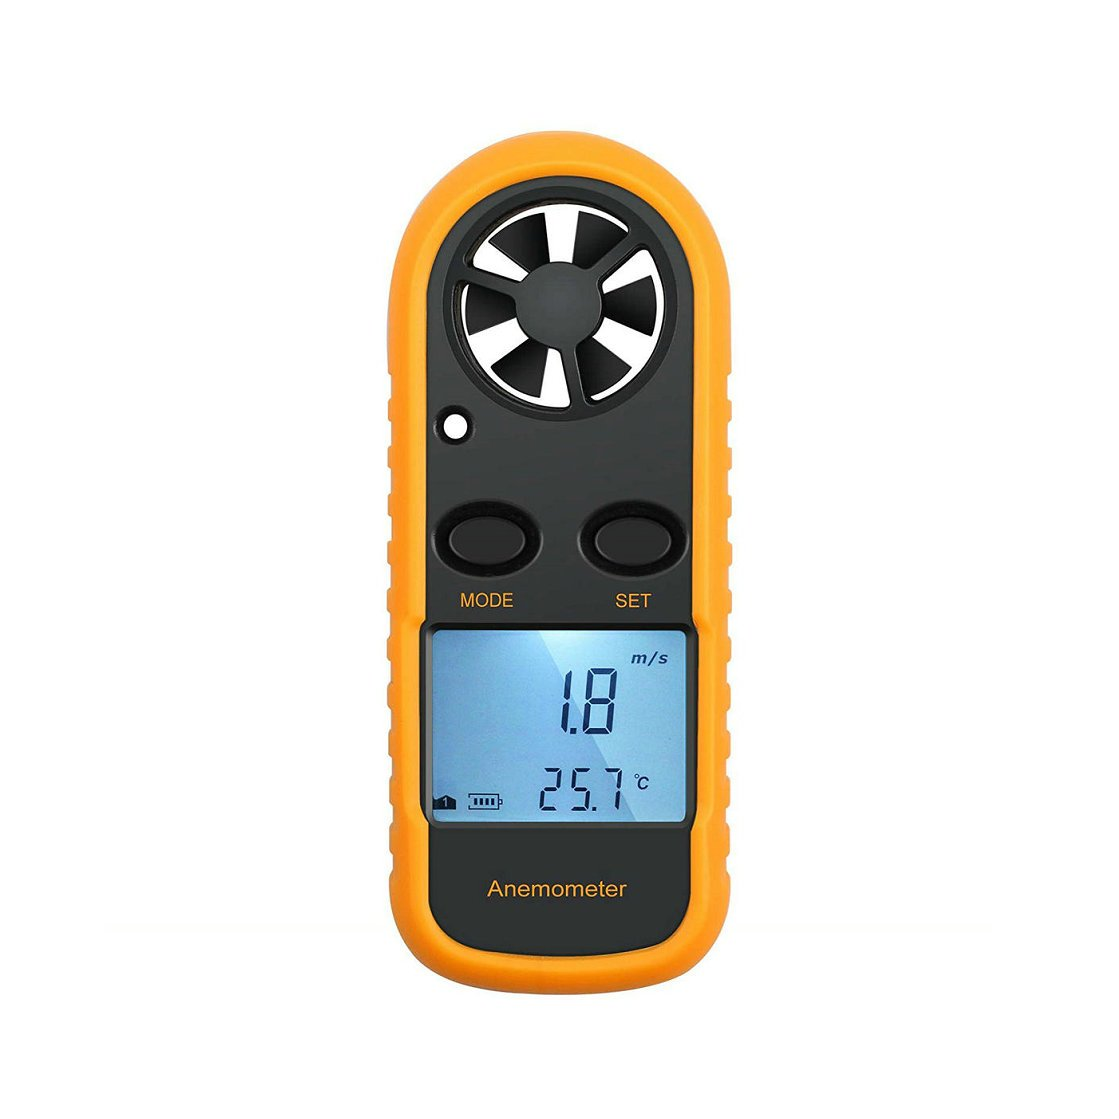 GuDoQi Digital Anemometer Handheld Wind Speed Meter with Backlight for Measuring Temperature Wind Chill Air Flow Velocity